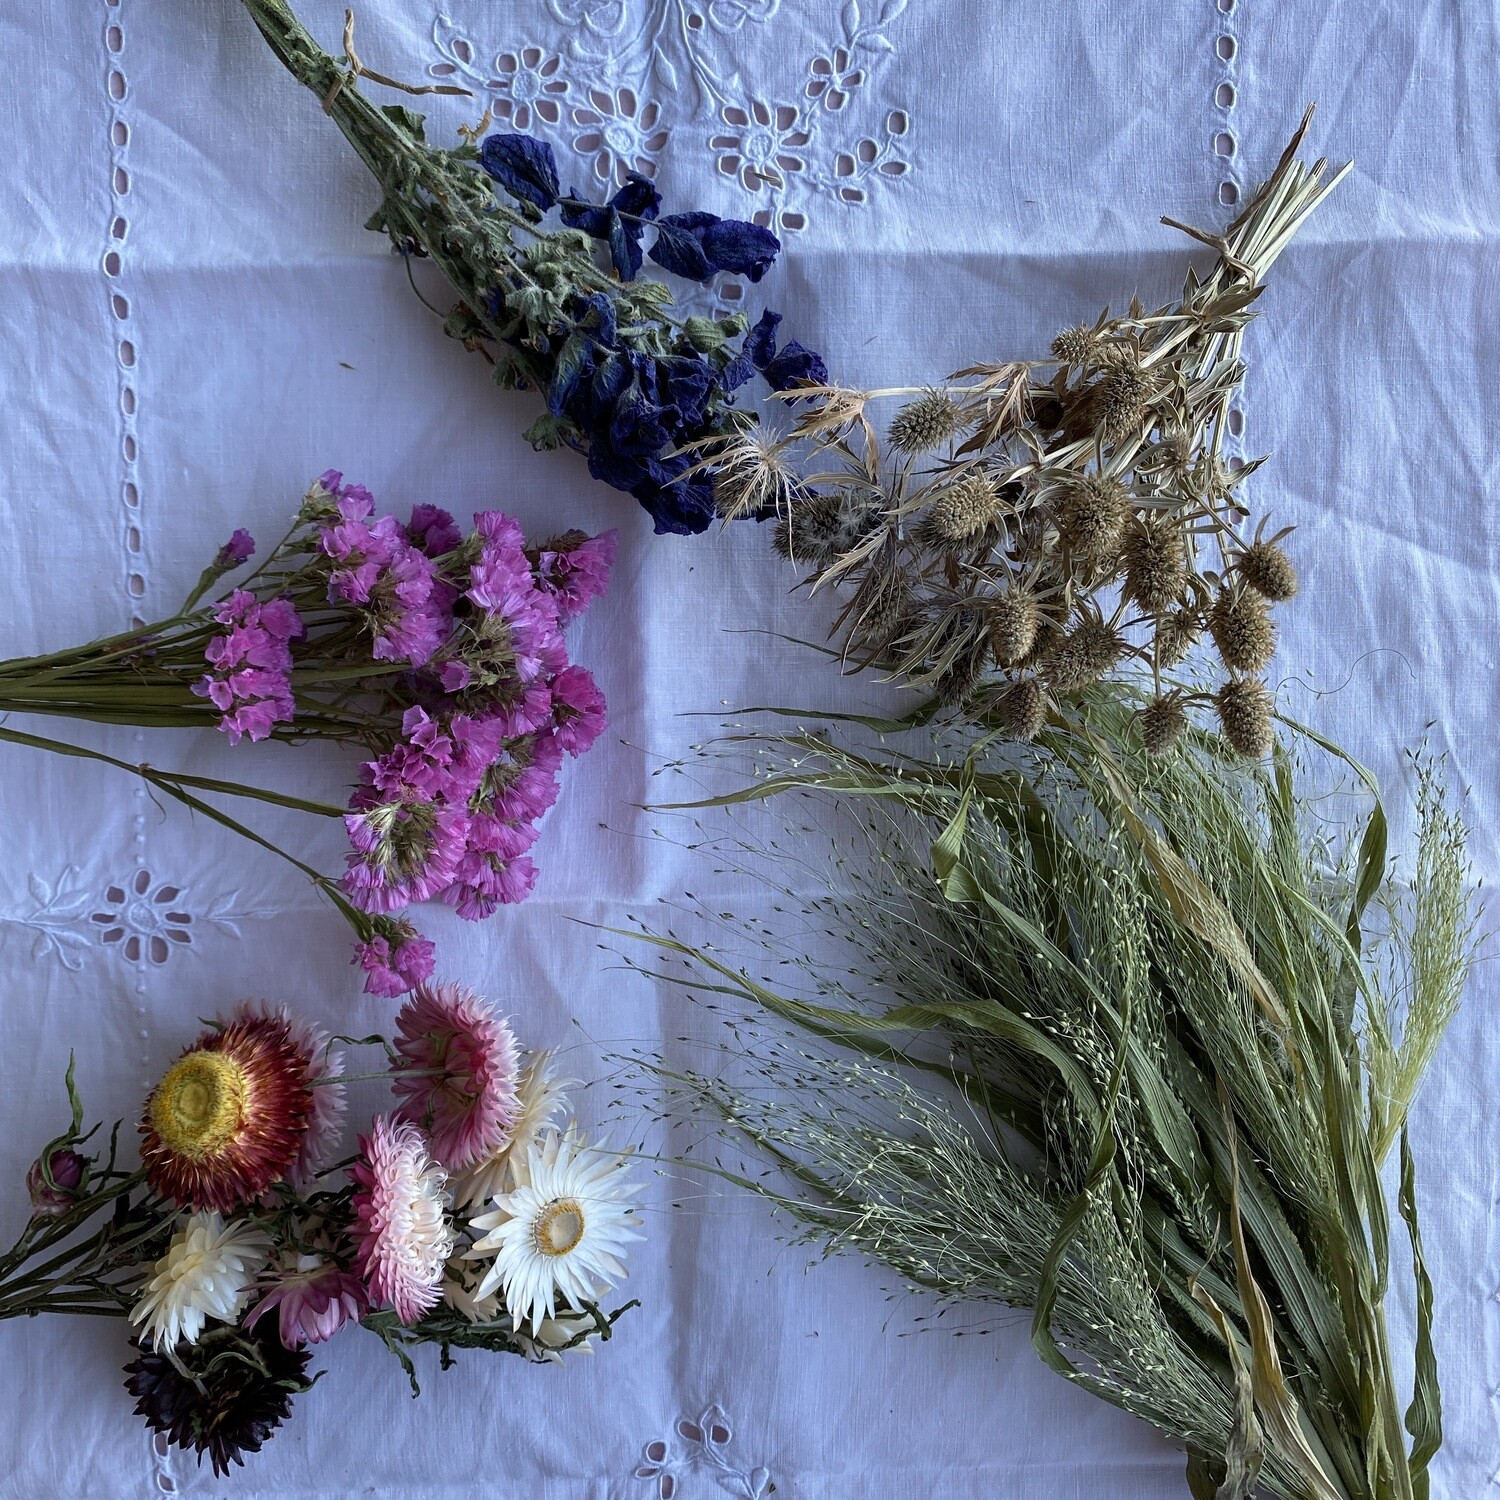 Selection of Dried Flowers for crafting